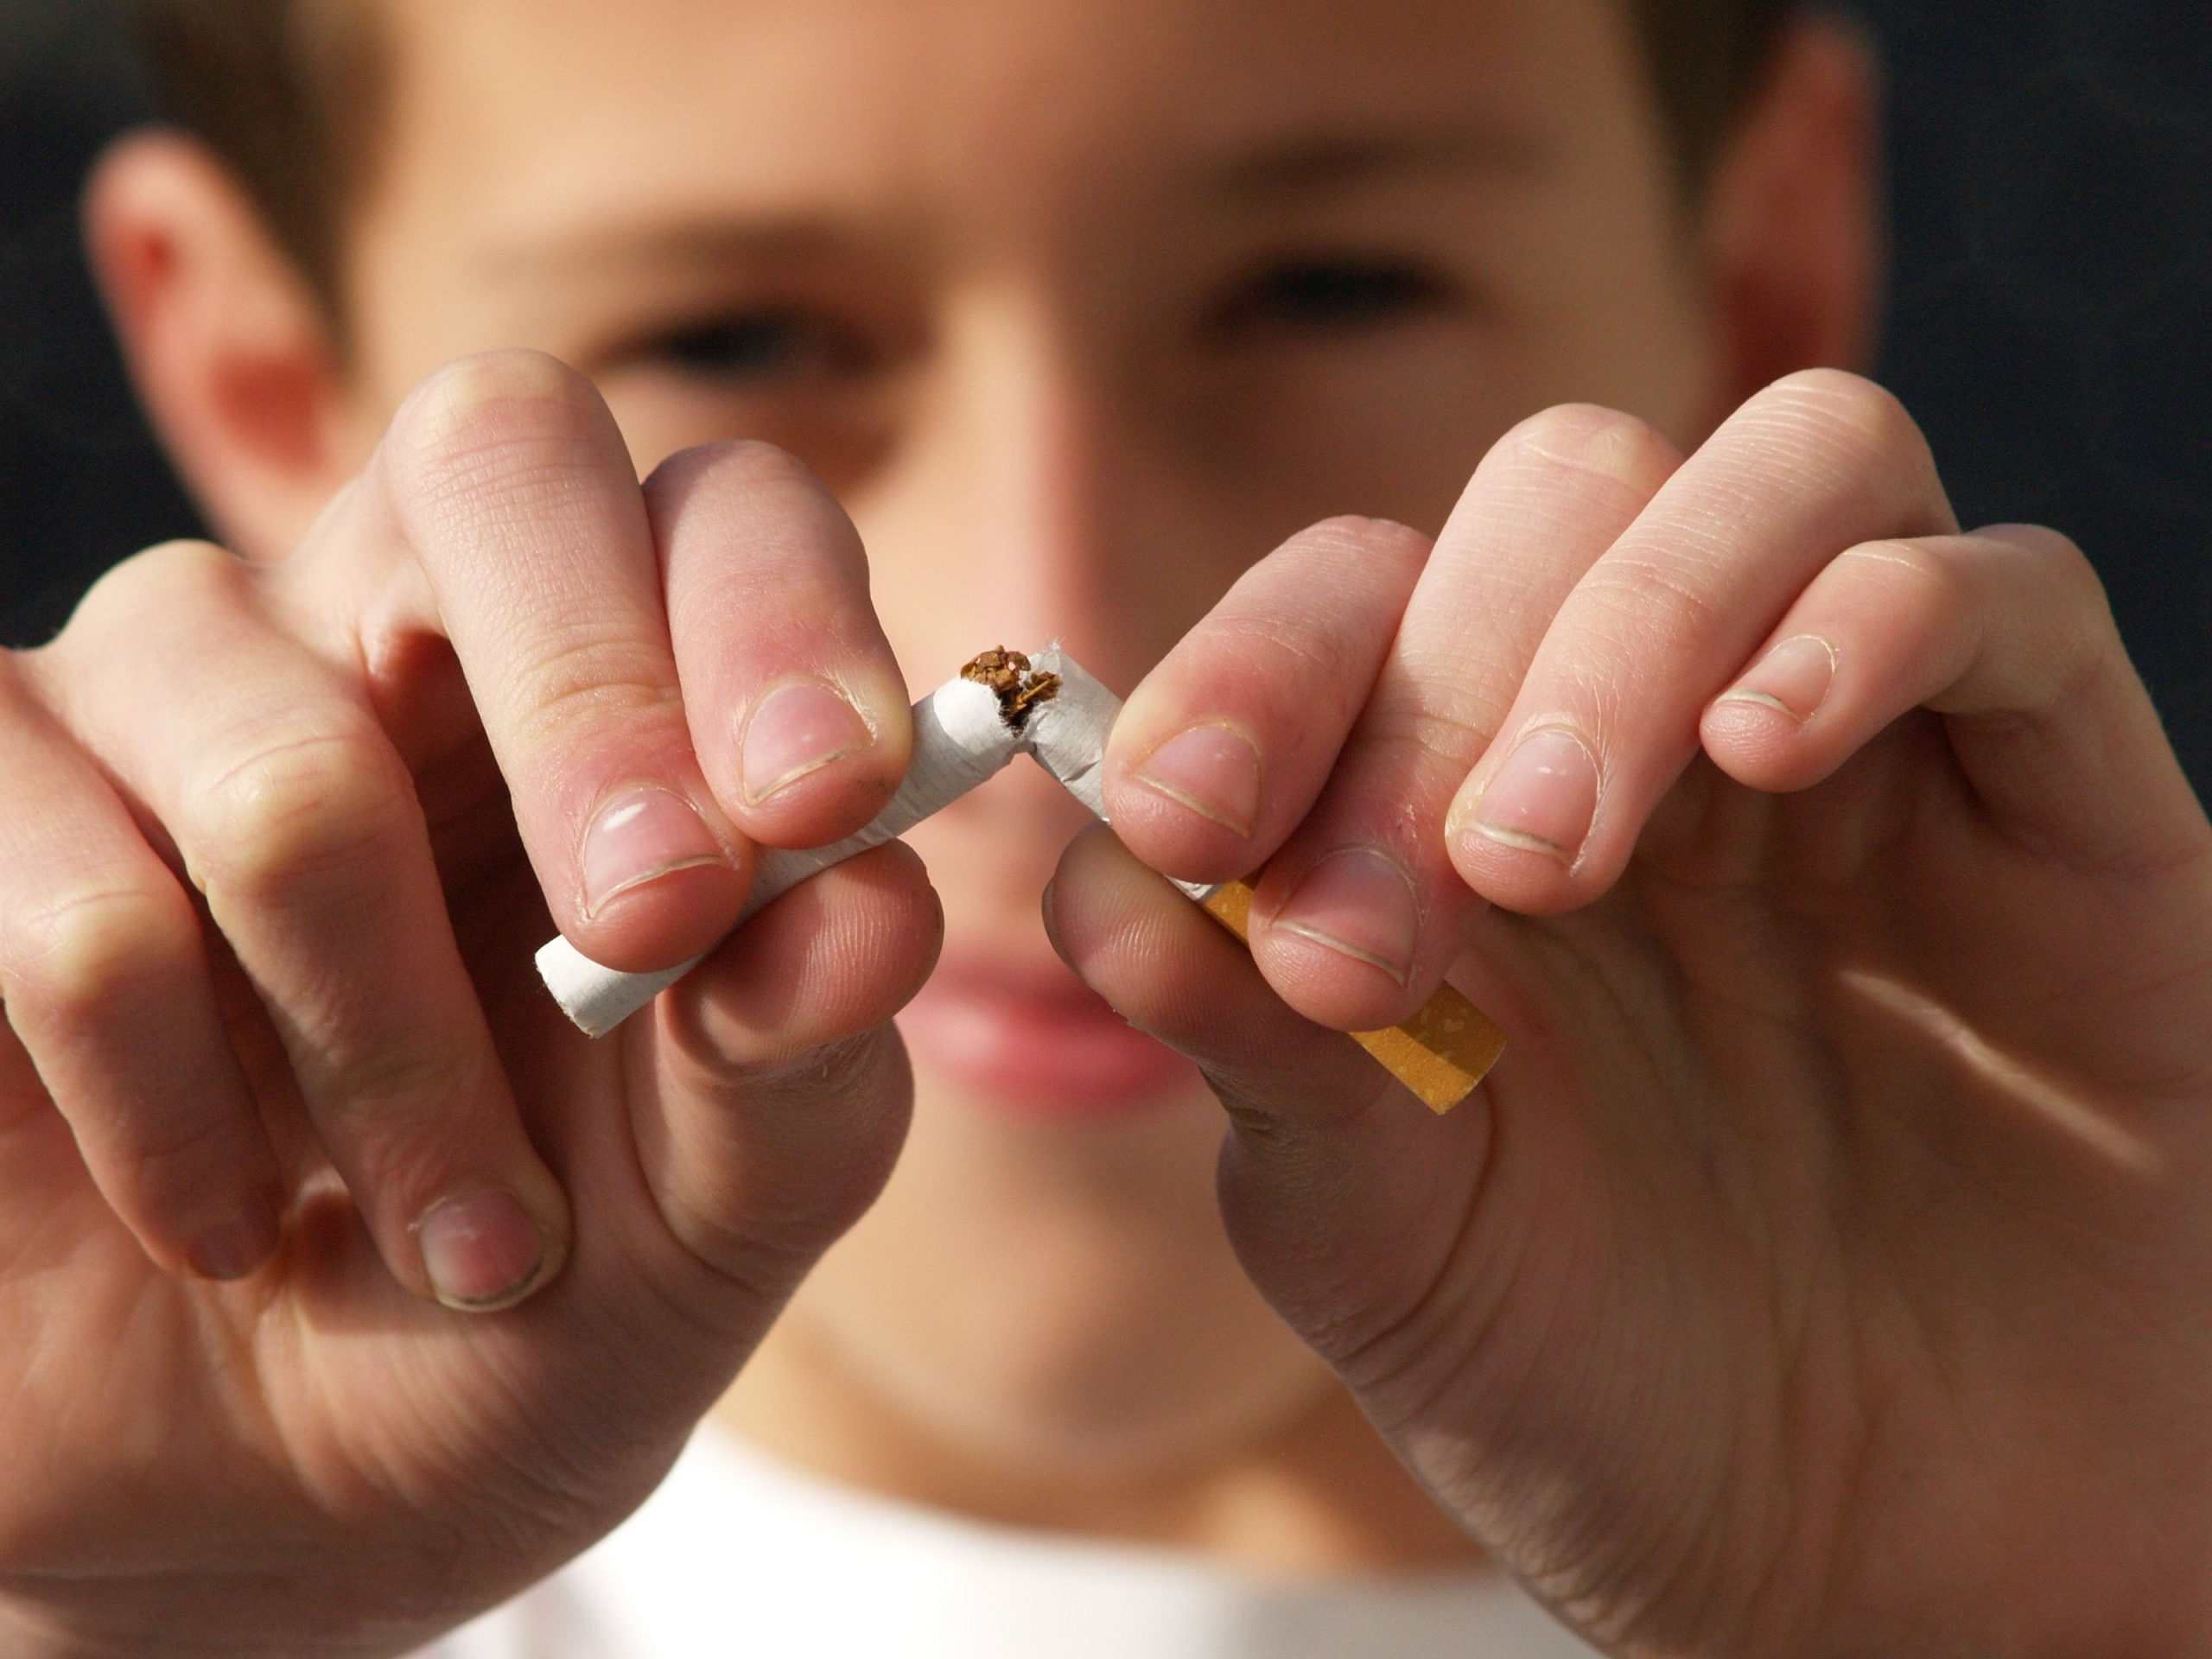 Livonia MI Dentist | Tobacco & Your Teeth: The Risks of Chewing and Smoking